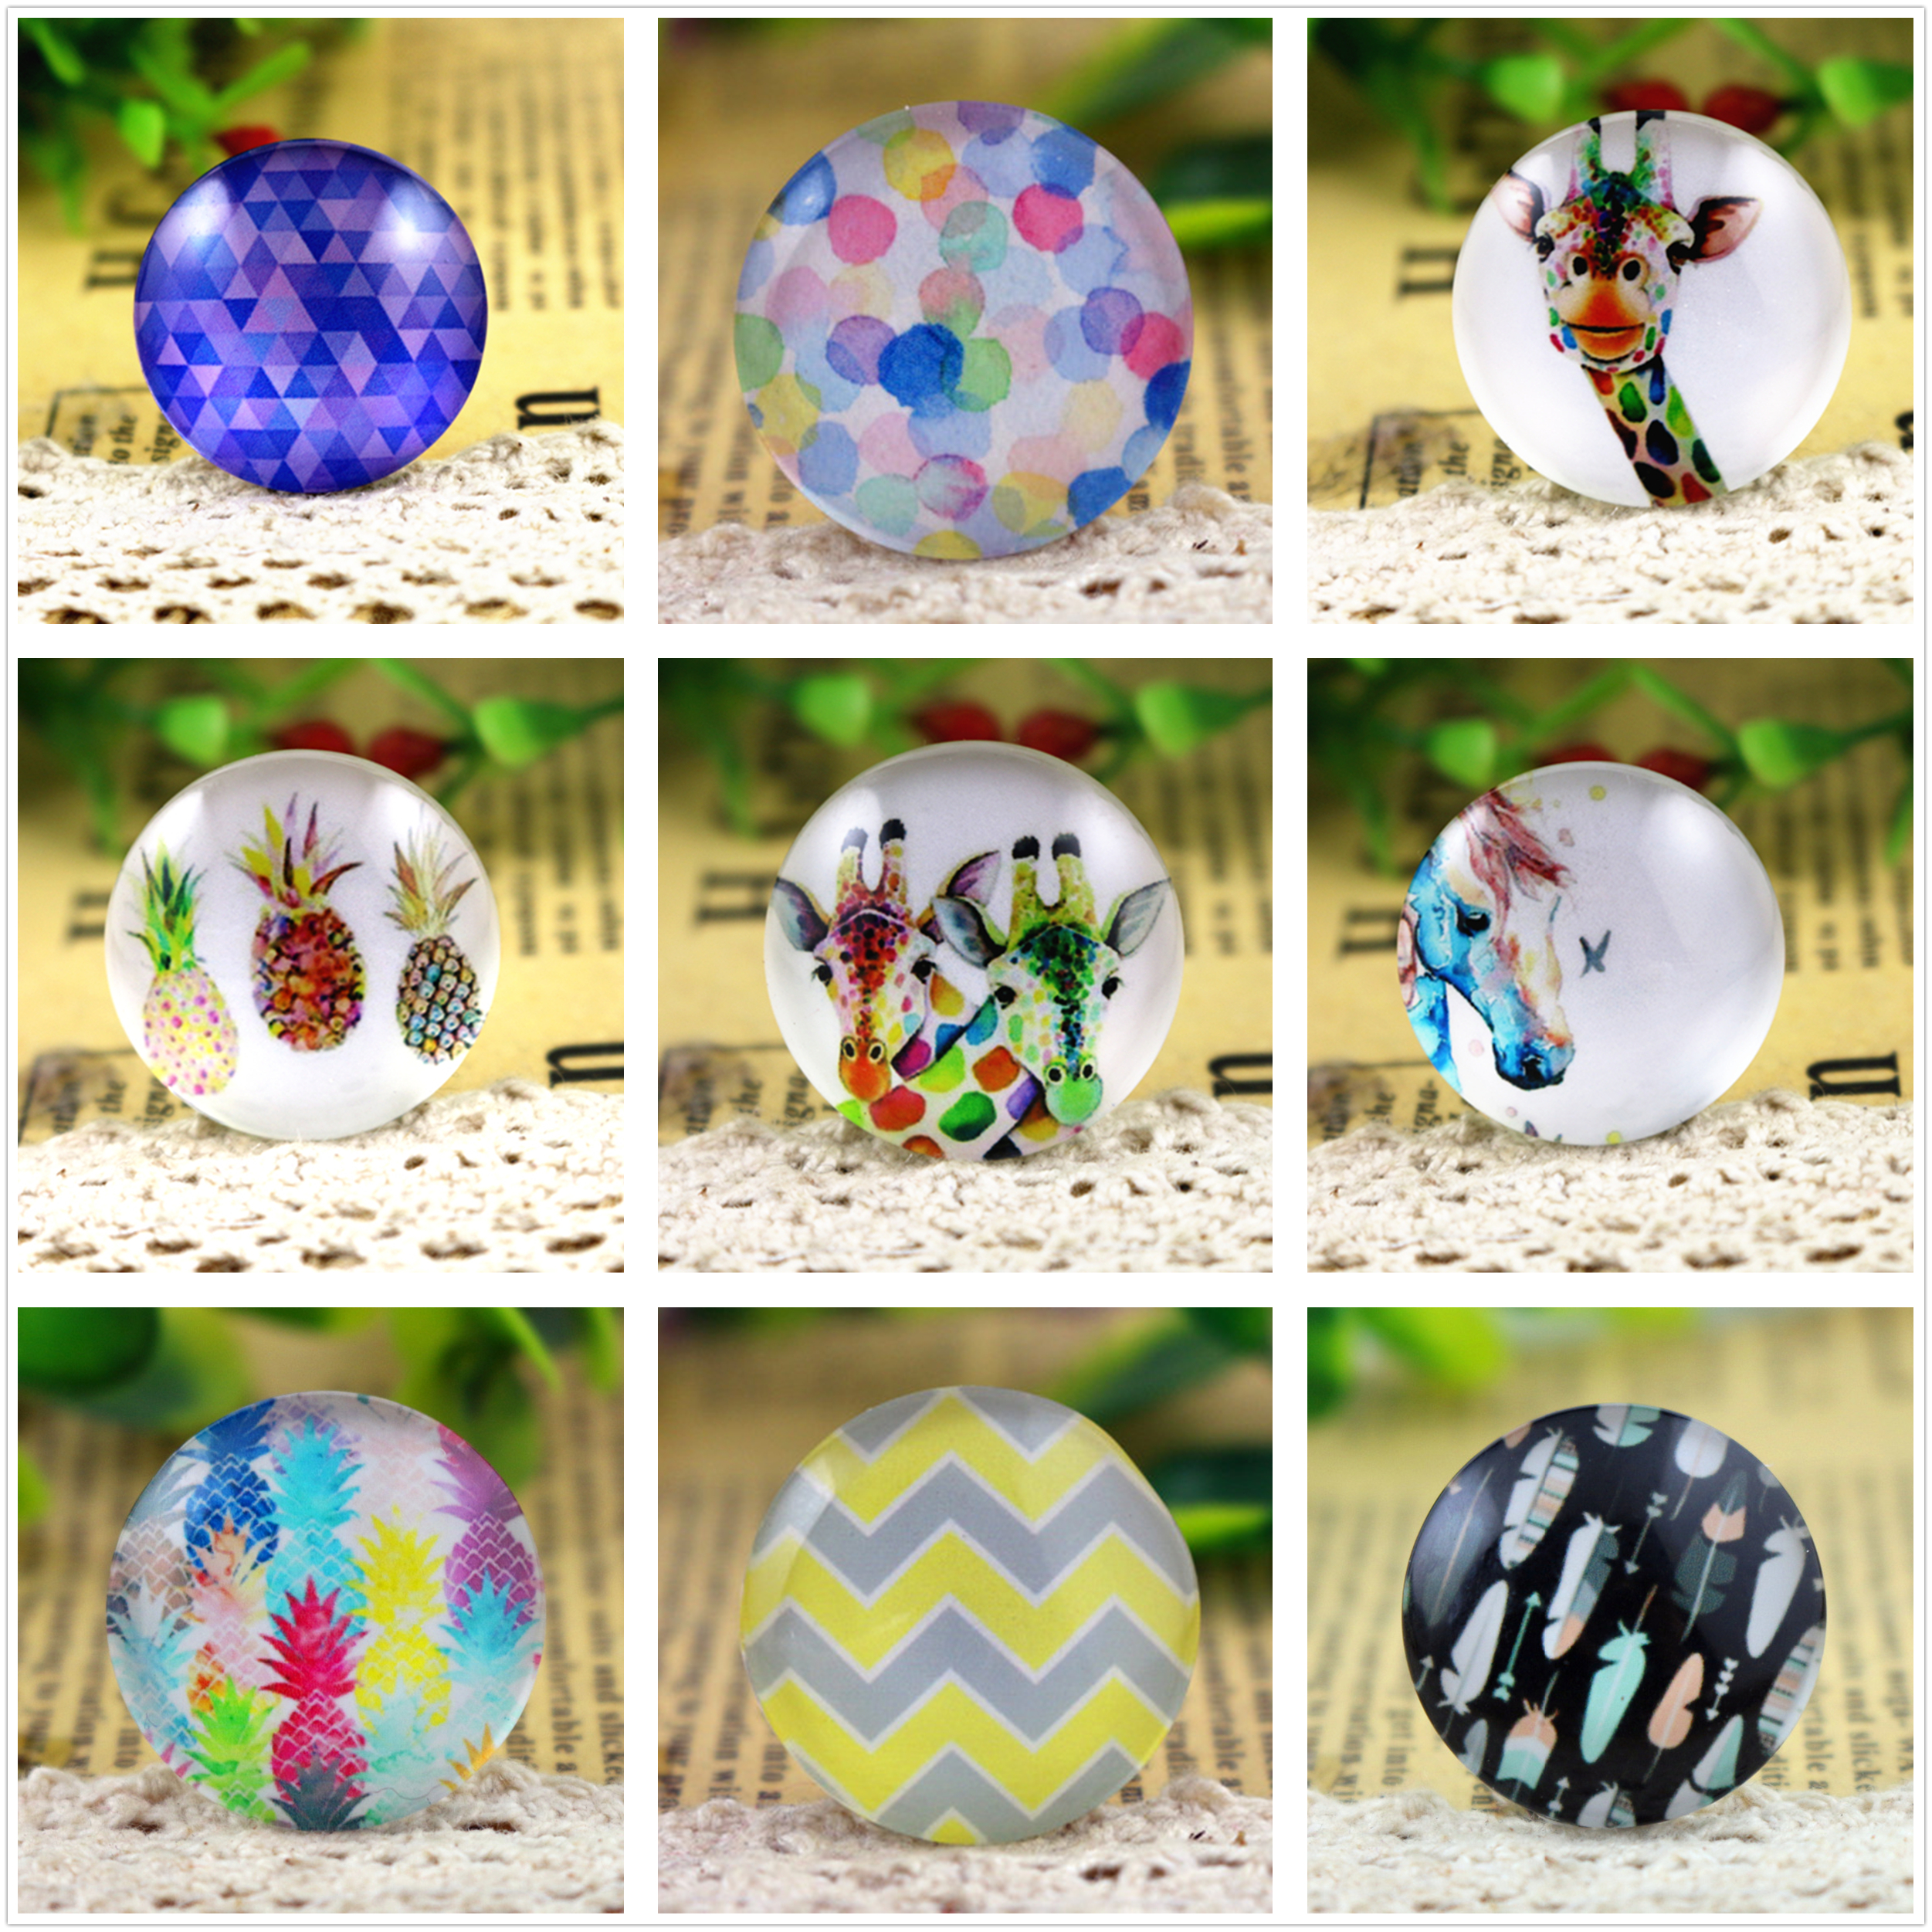 New Fashion  5pcs/Lot 25mm Popular Pattern, Alpaca Style Handmade Photo Glass Cabochons Pattern Jewelry Accessories Supplies